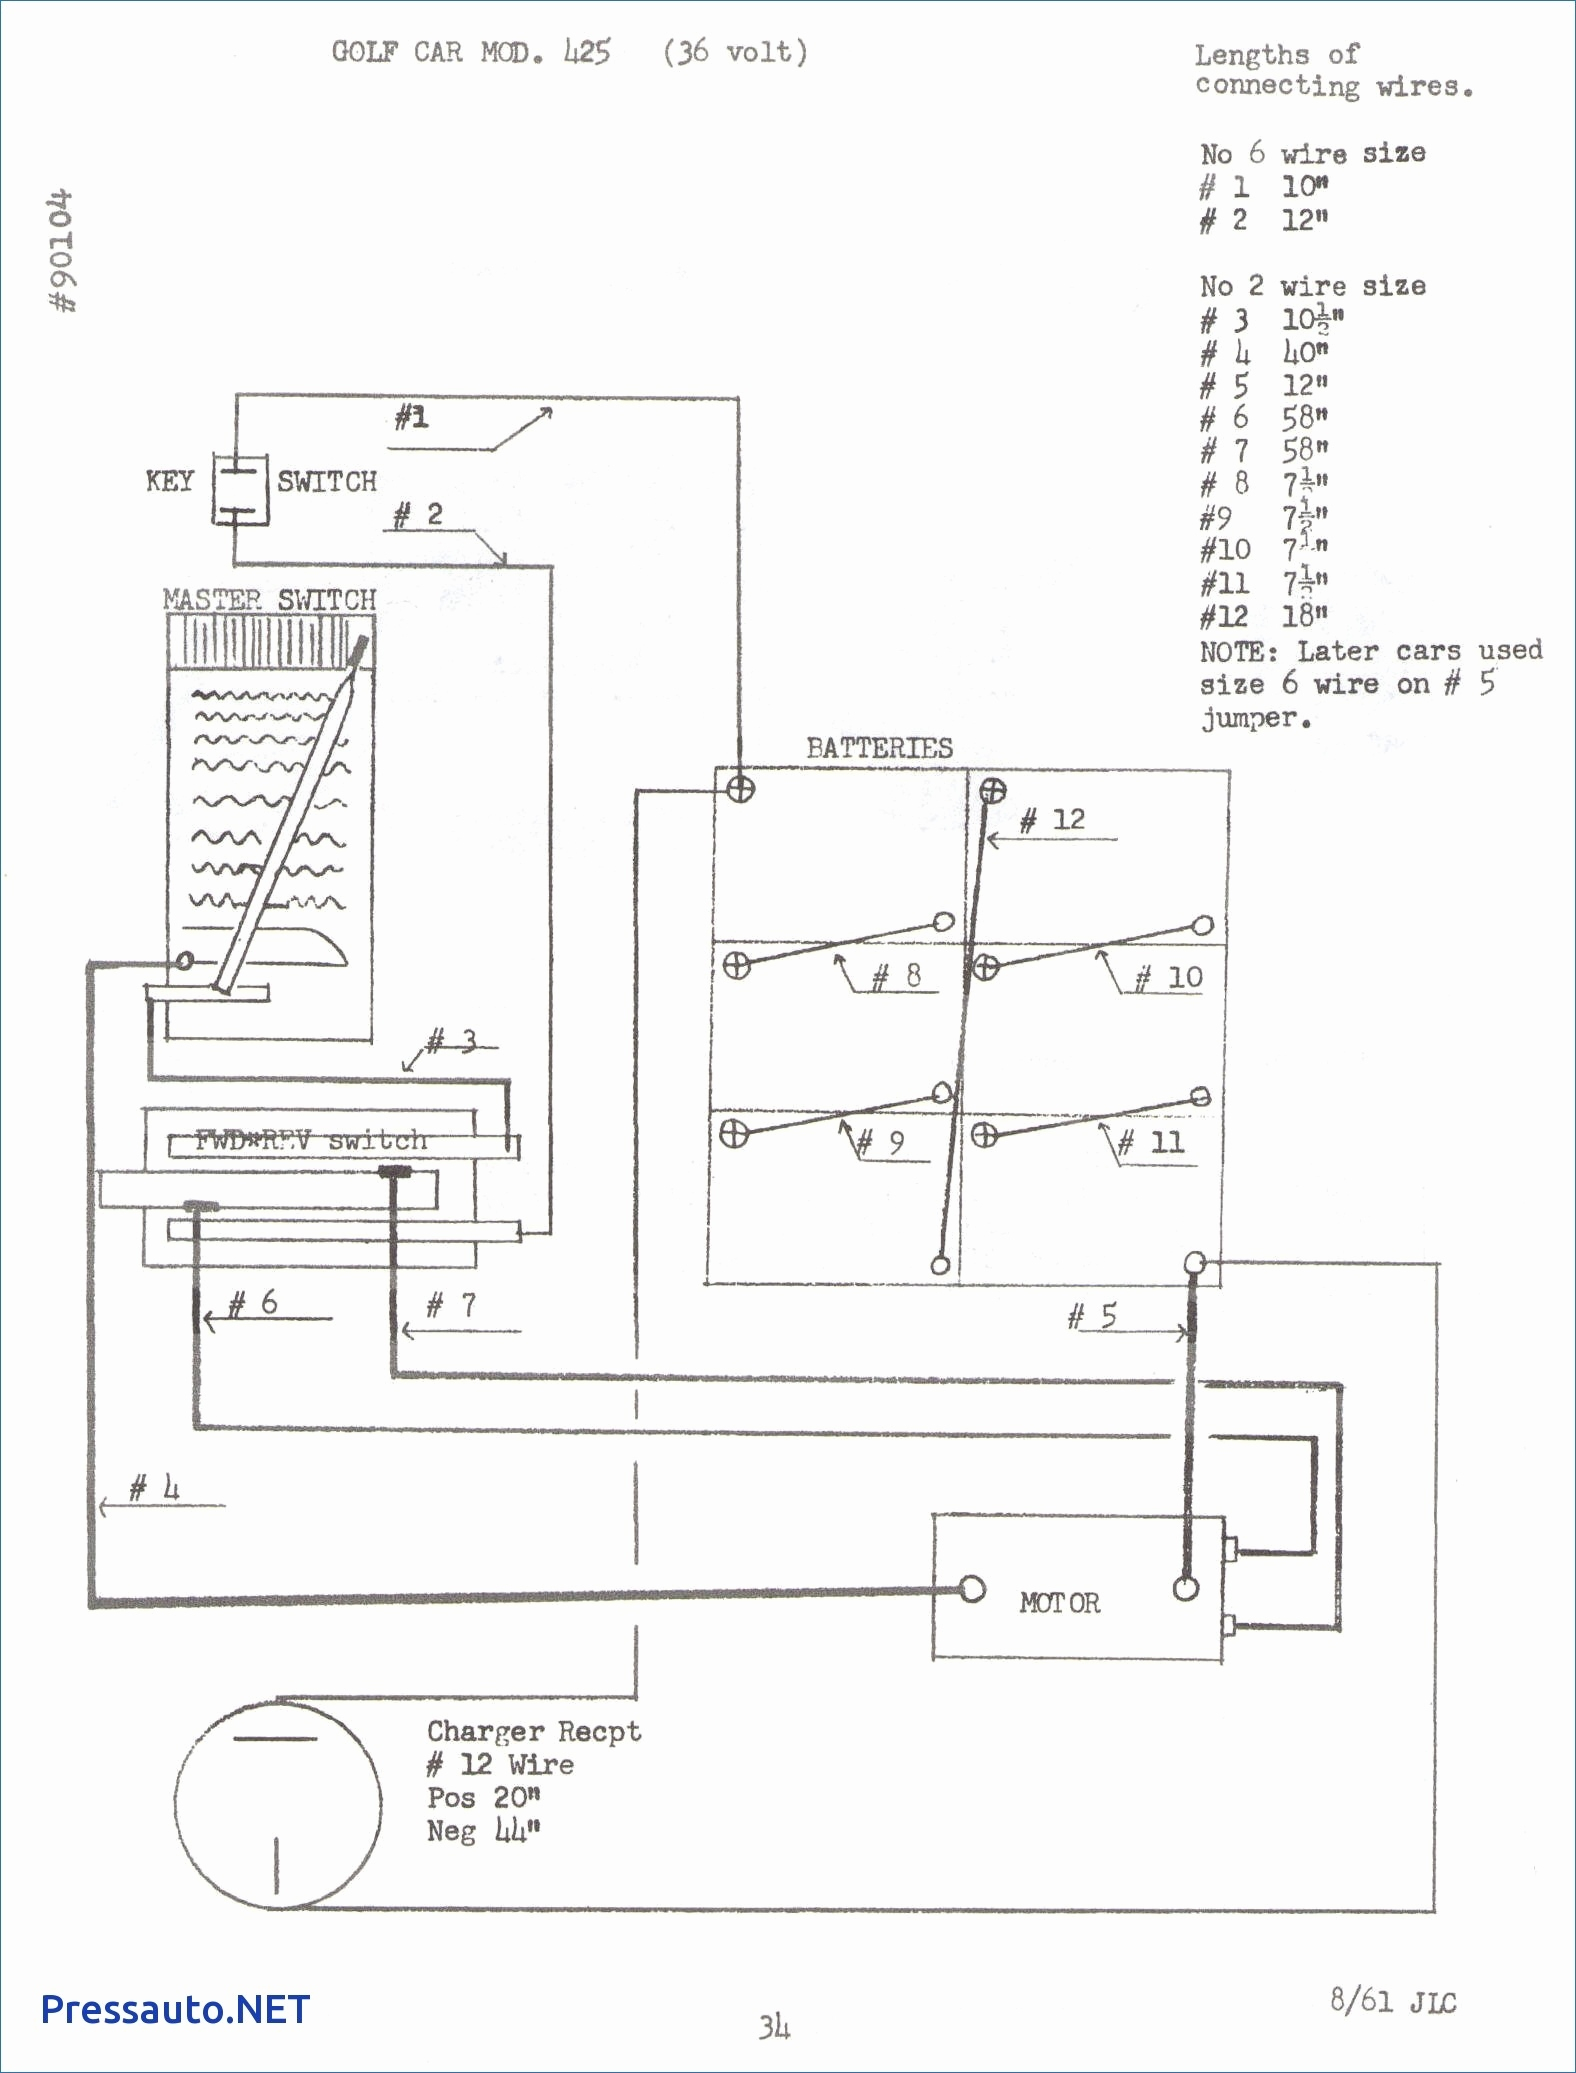 Taylor Wiring Diagram - Wiring Diagram Review